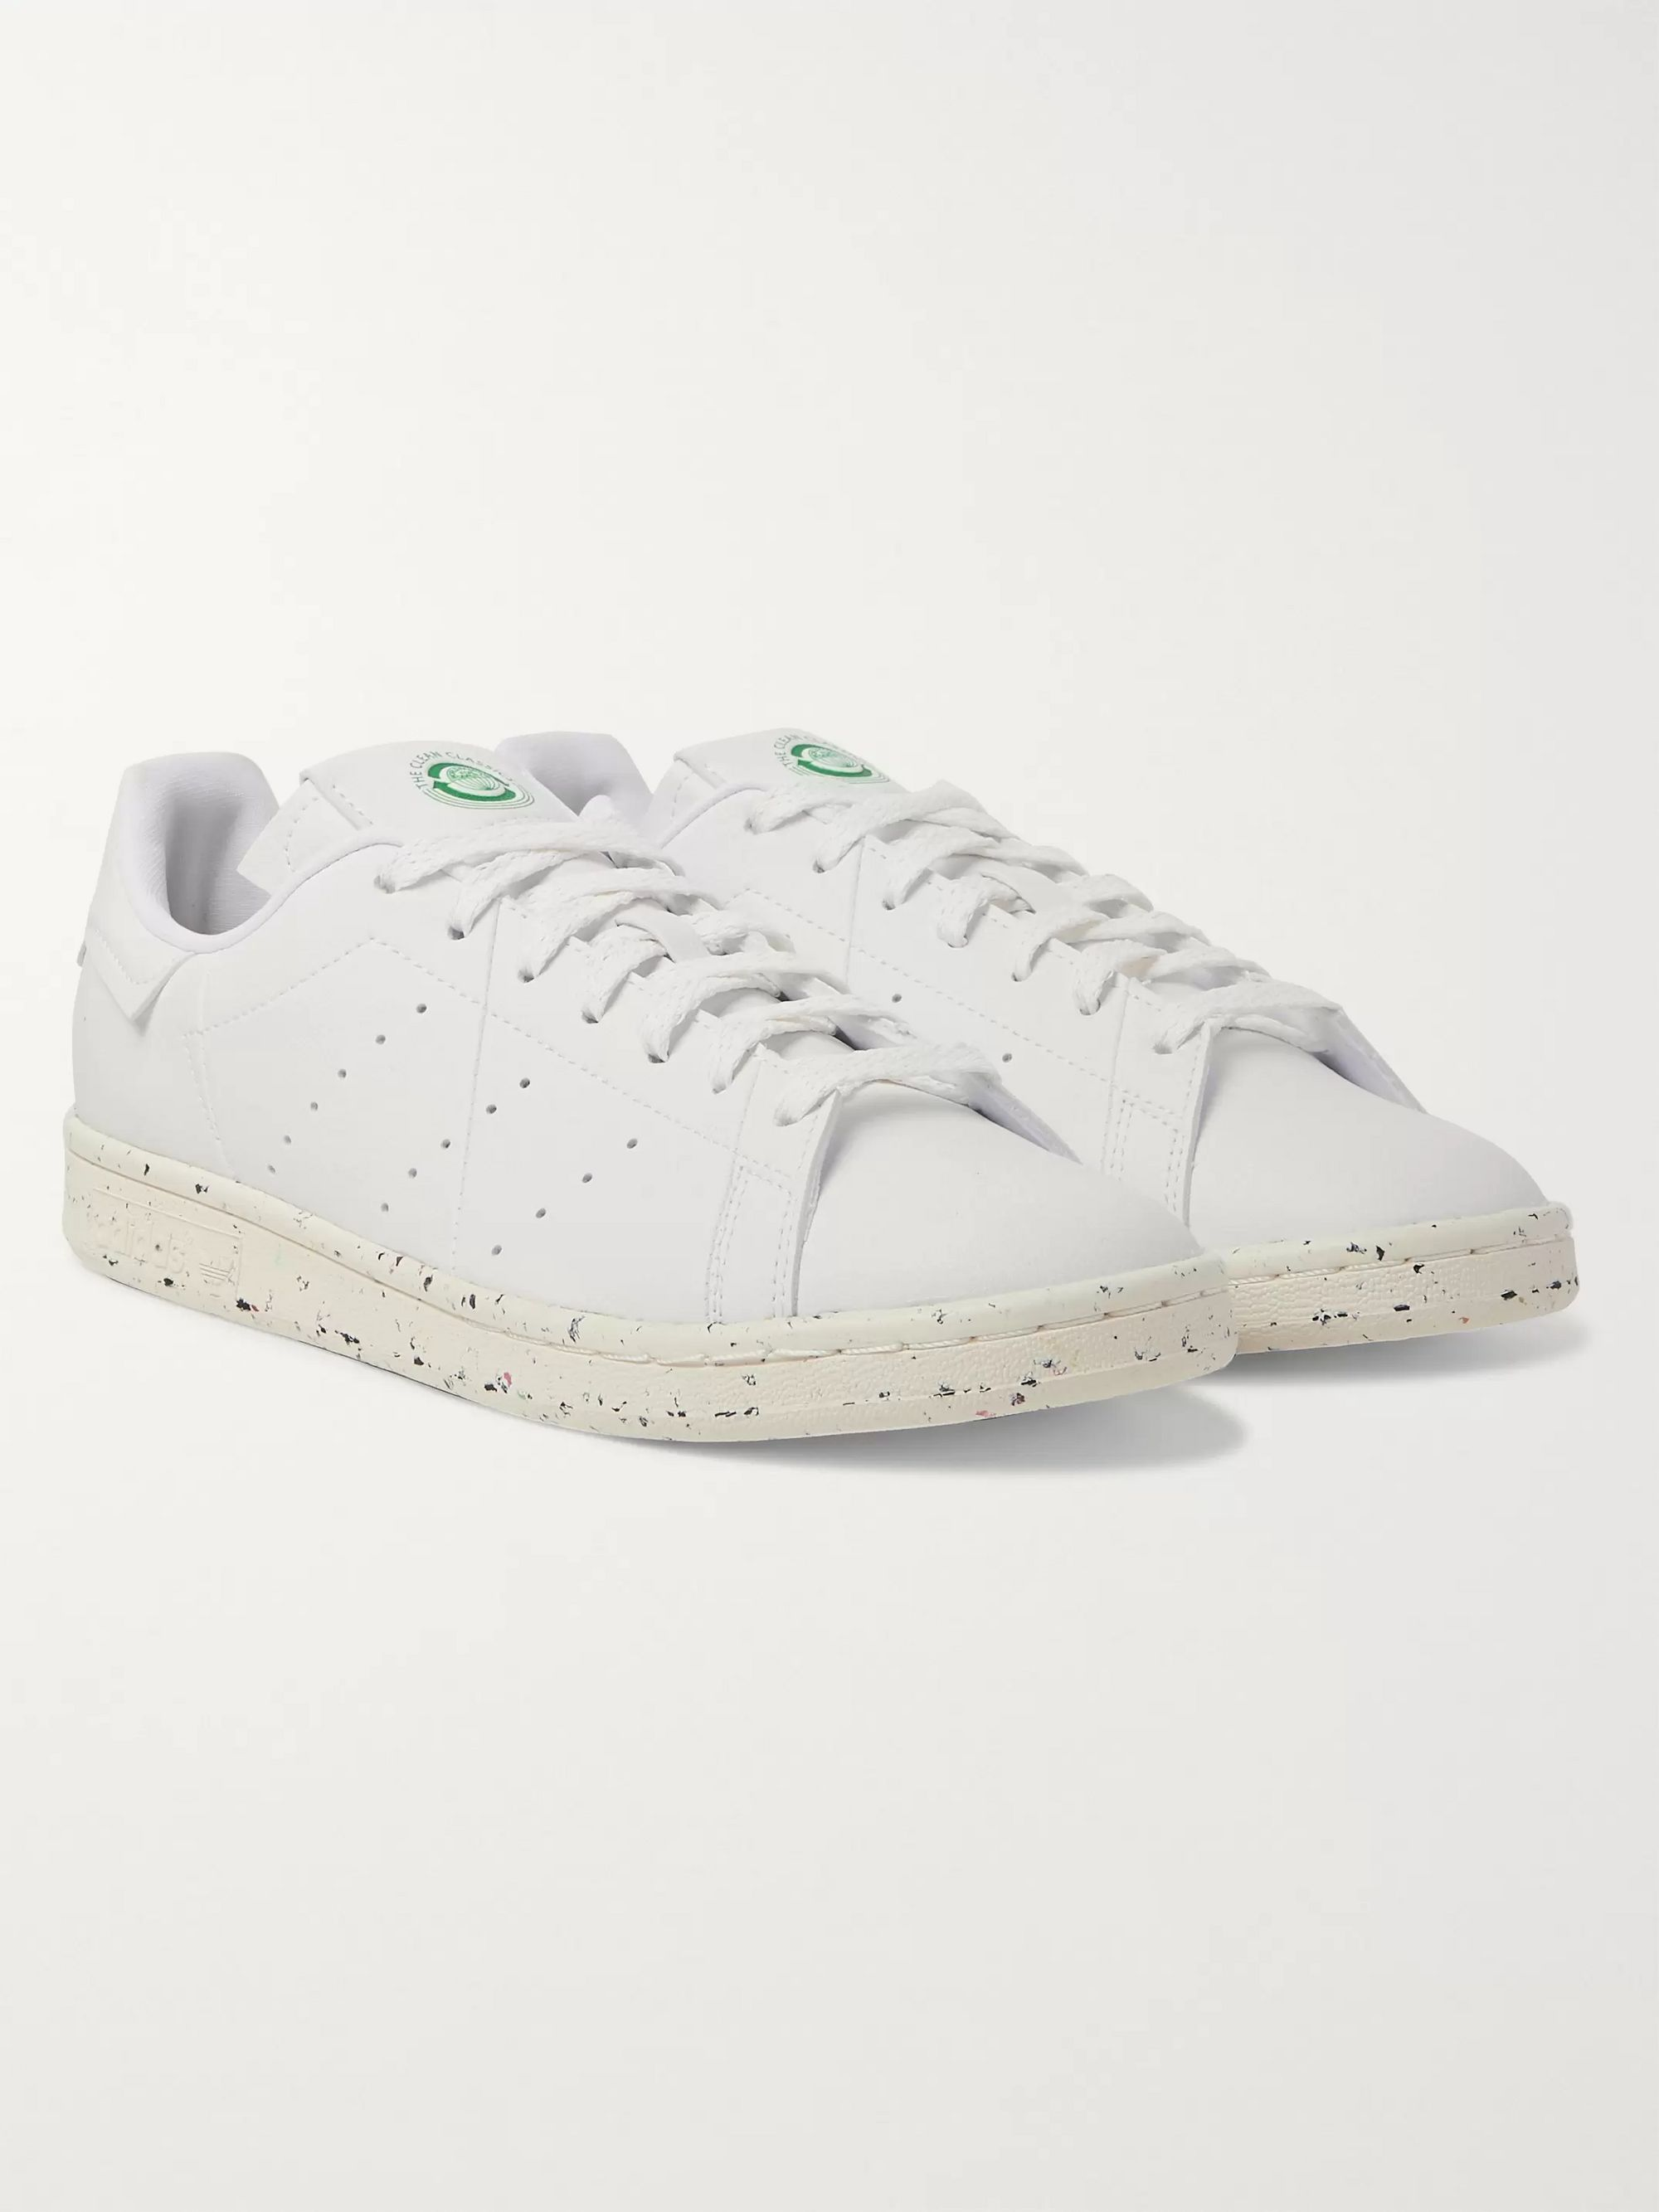 Stan Smith Recycled Leather Sneakers